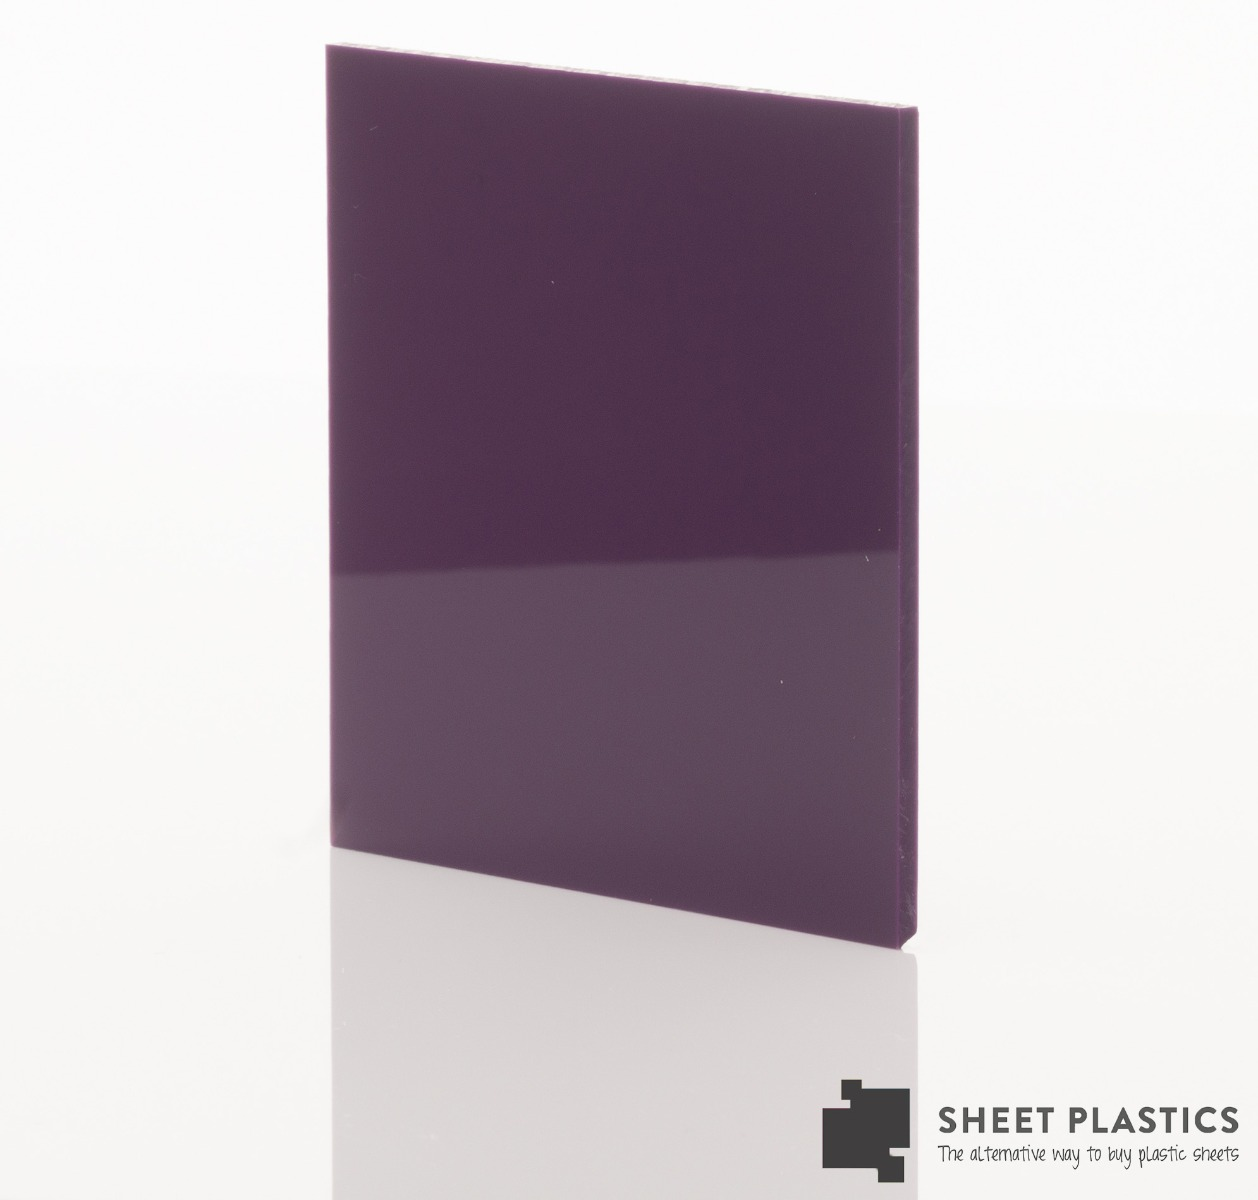 PVC Cladding Sample